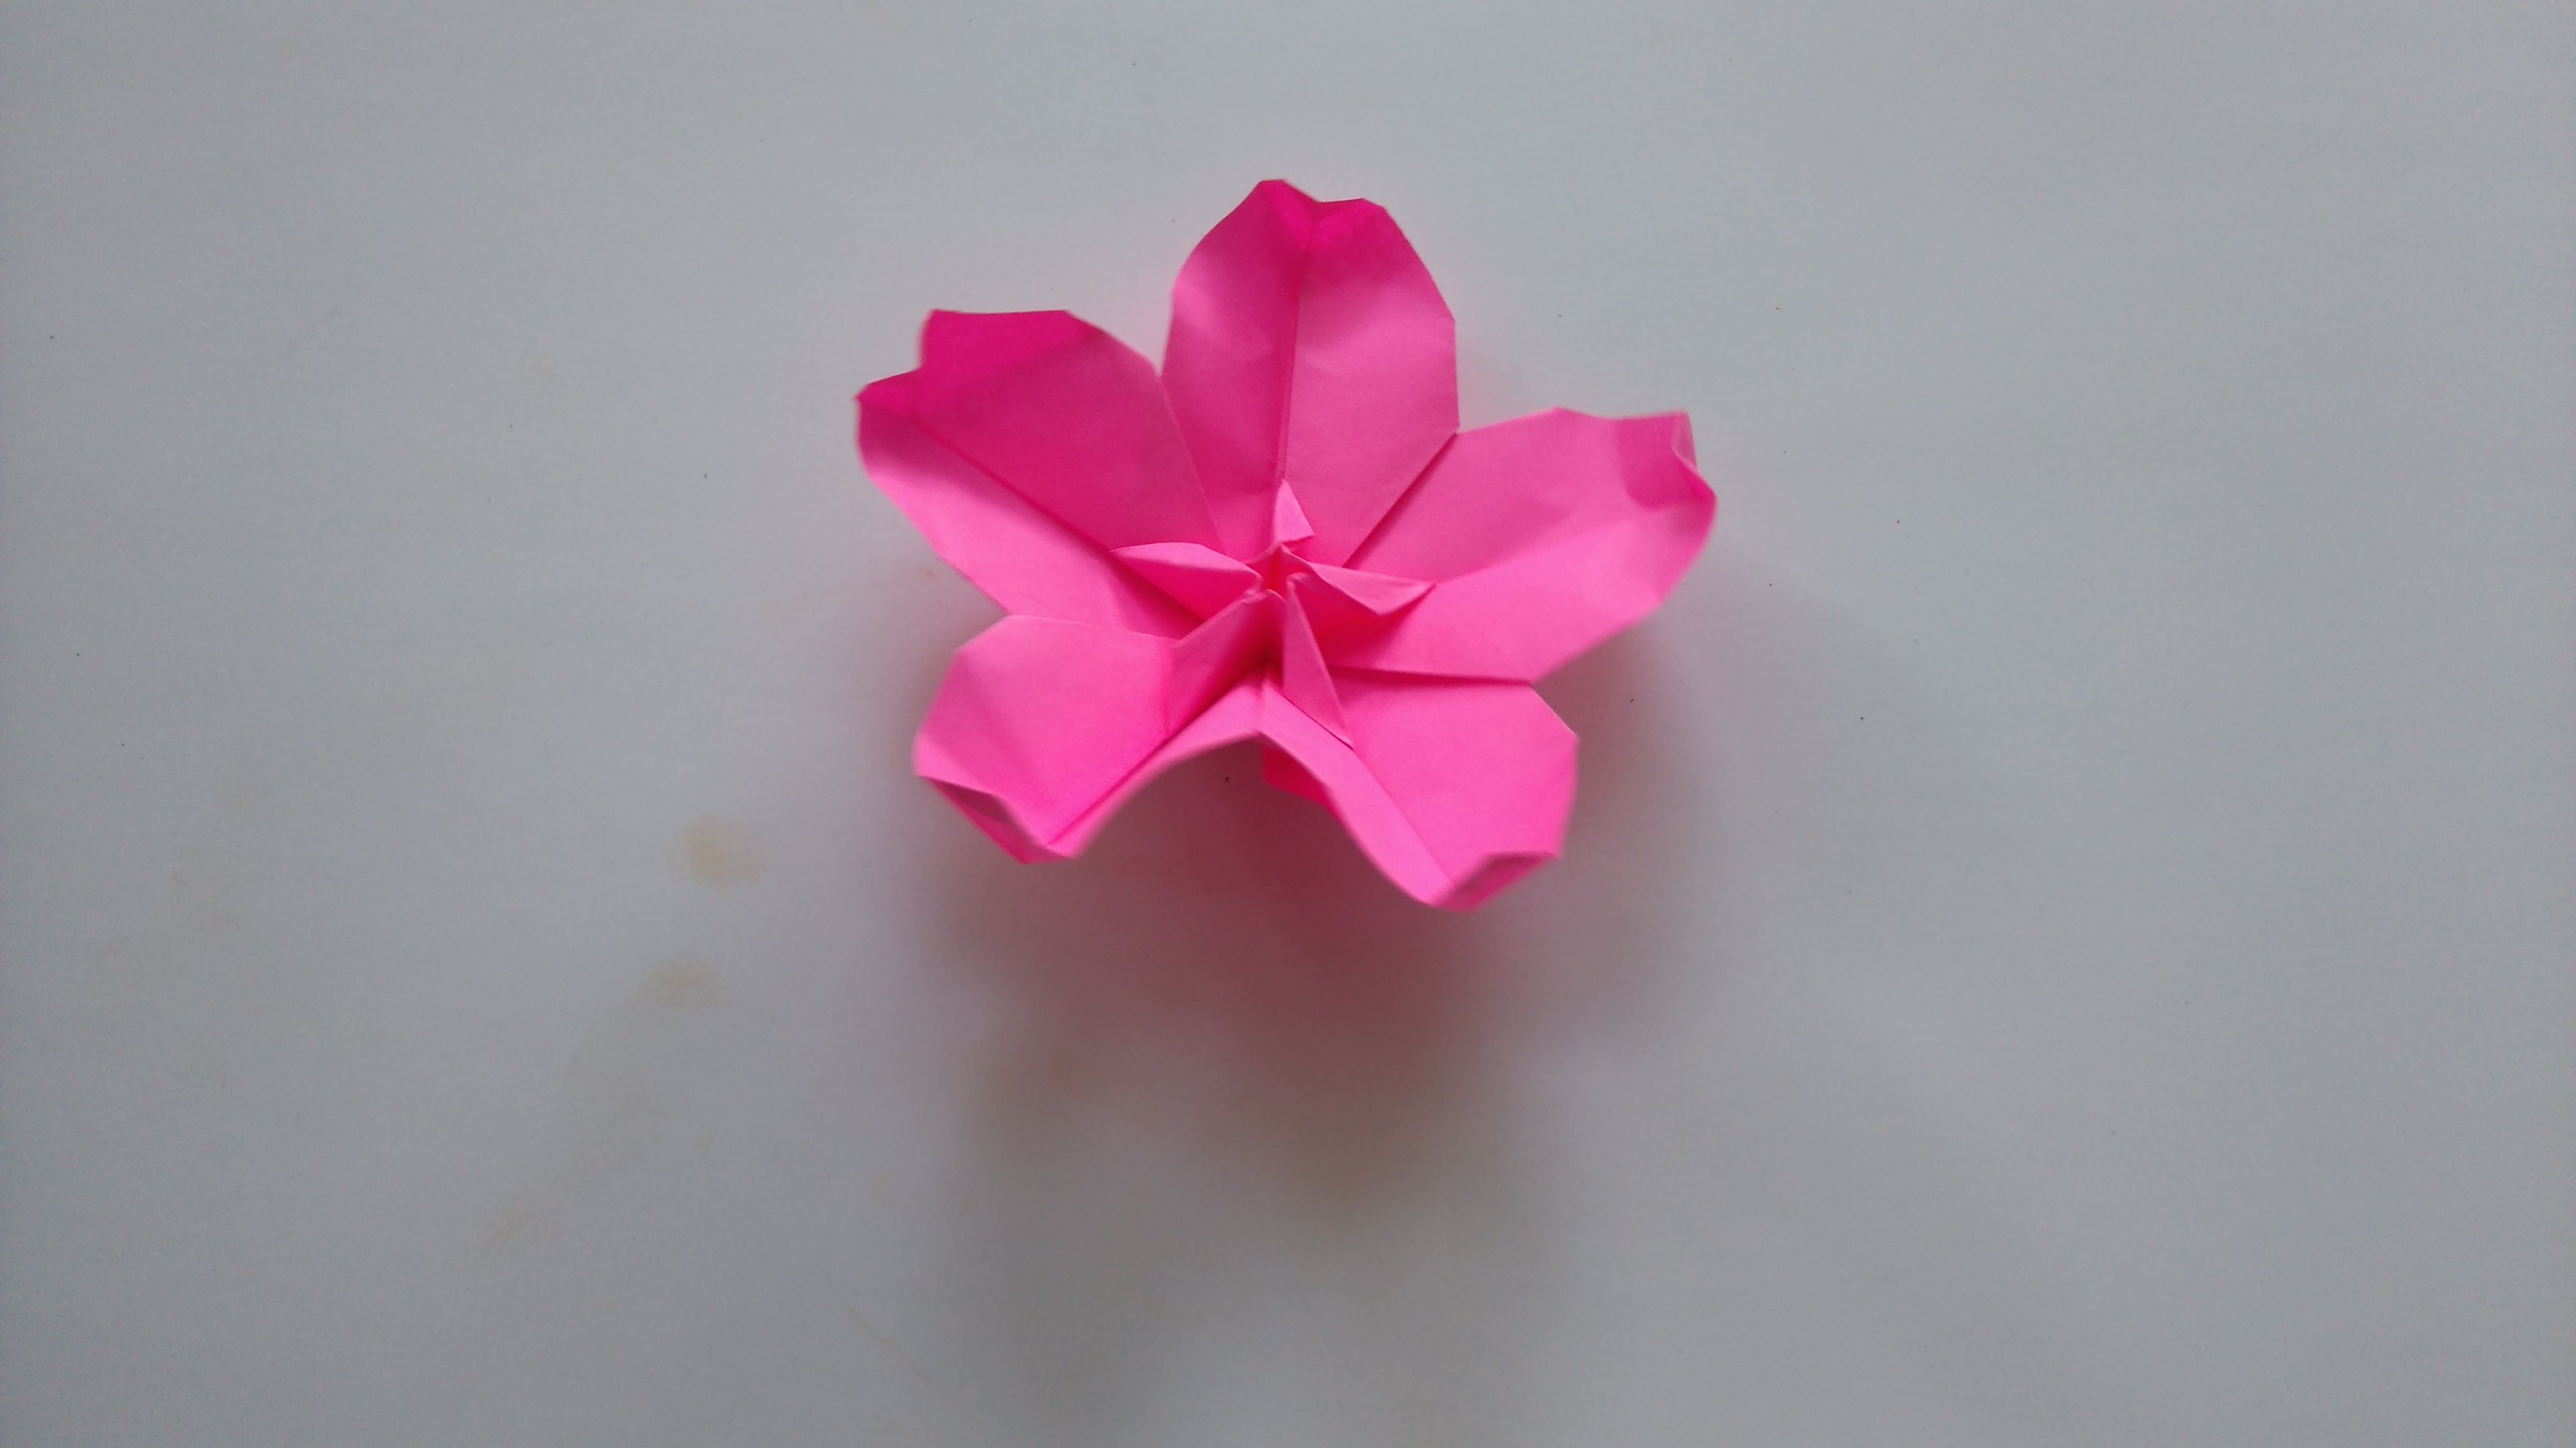 Origami Tutorial How To Fold Origami Cherry Blossom Art Projects Pinterest Origami Blume Origami And Blumen